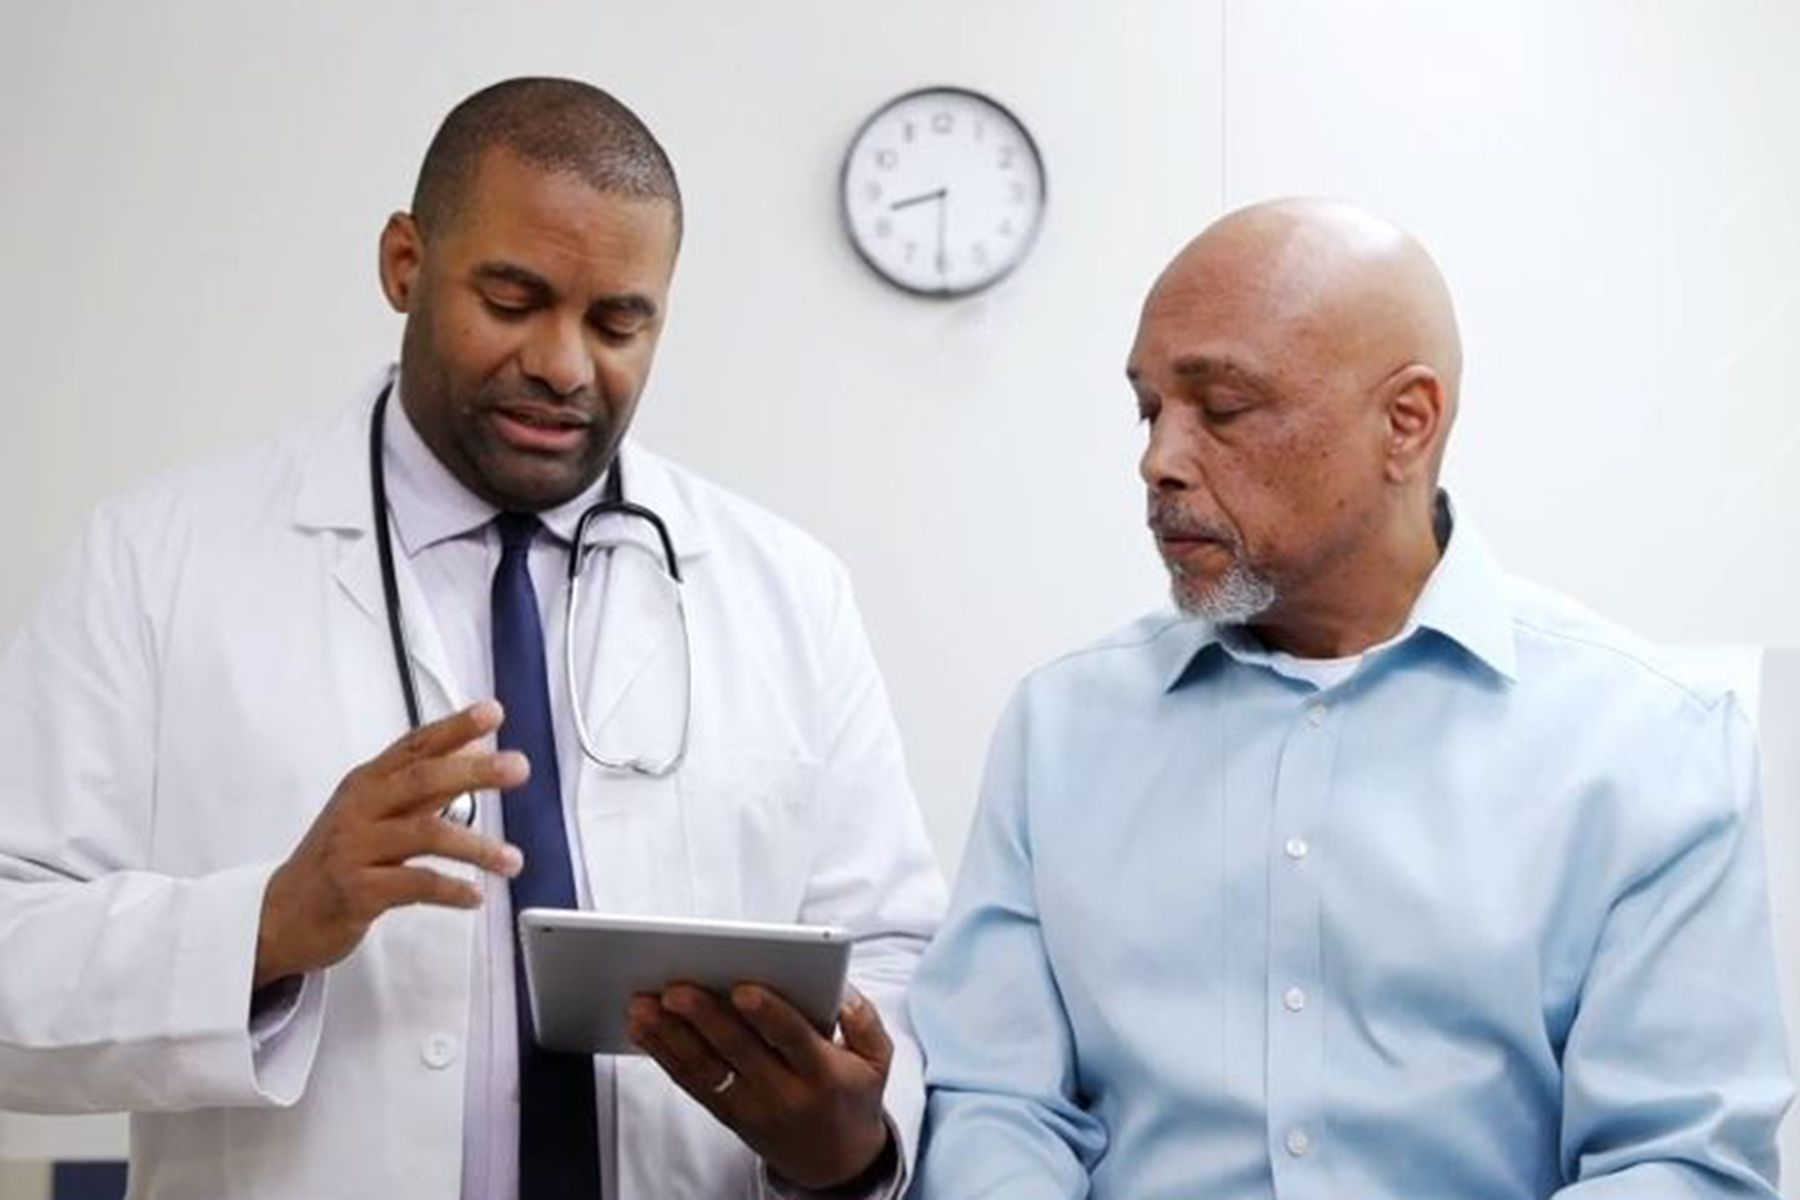 Why Is Liver Cancer More Lethal for Black Patients?